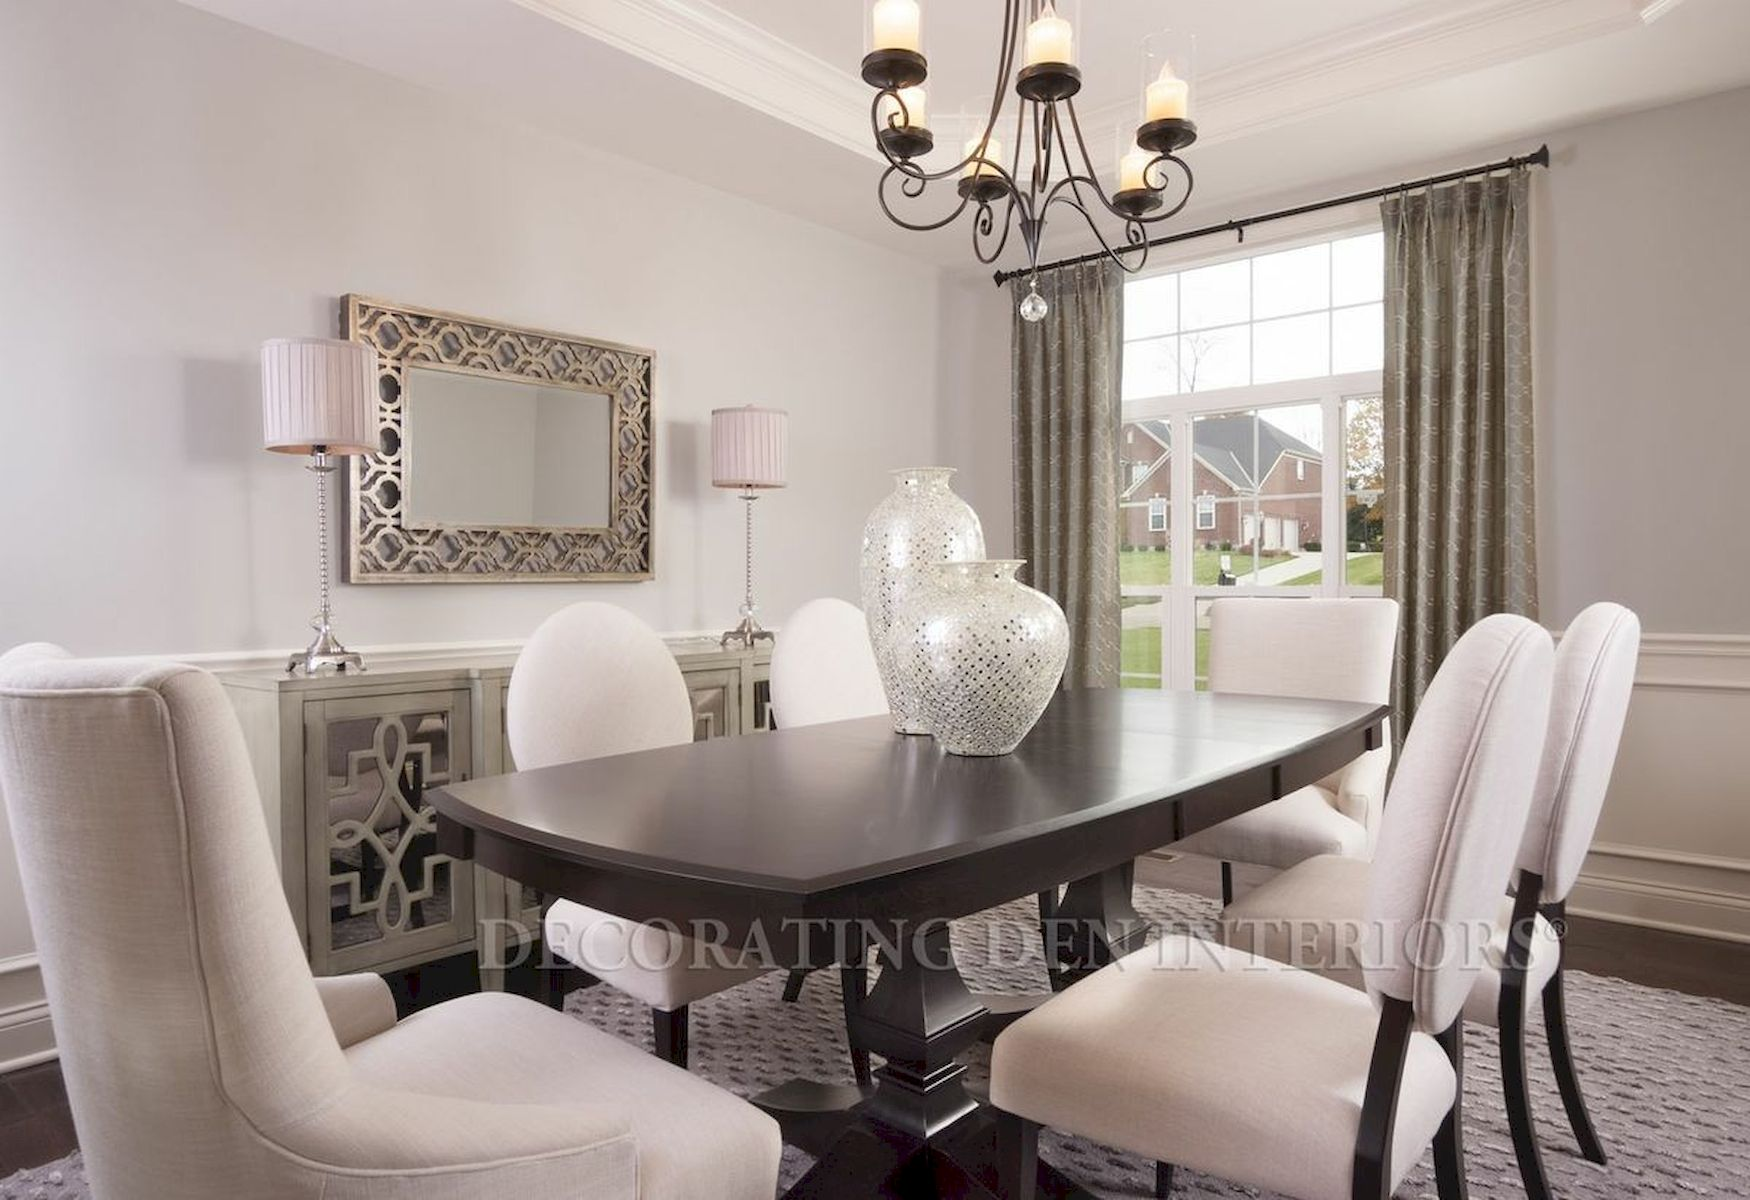 50 Gorgeous Dinning Room Design and Decor Ideas (28)